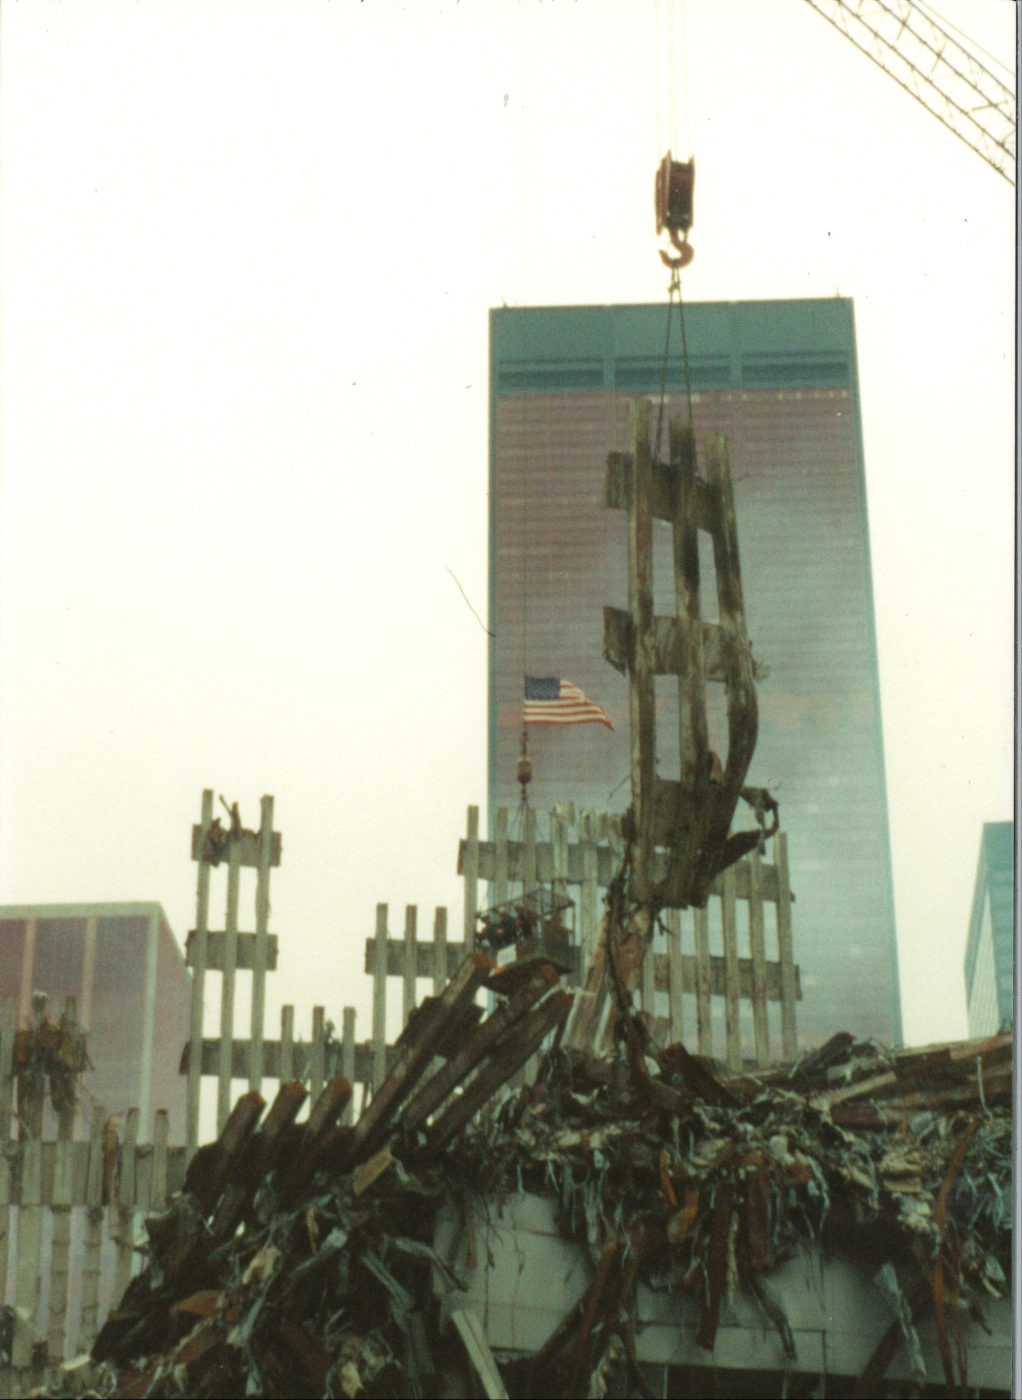 Crane Lifting Debris at Ground Zero with One Liberty Plaza Sheathed in the Background